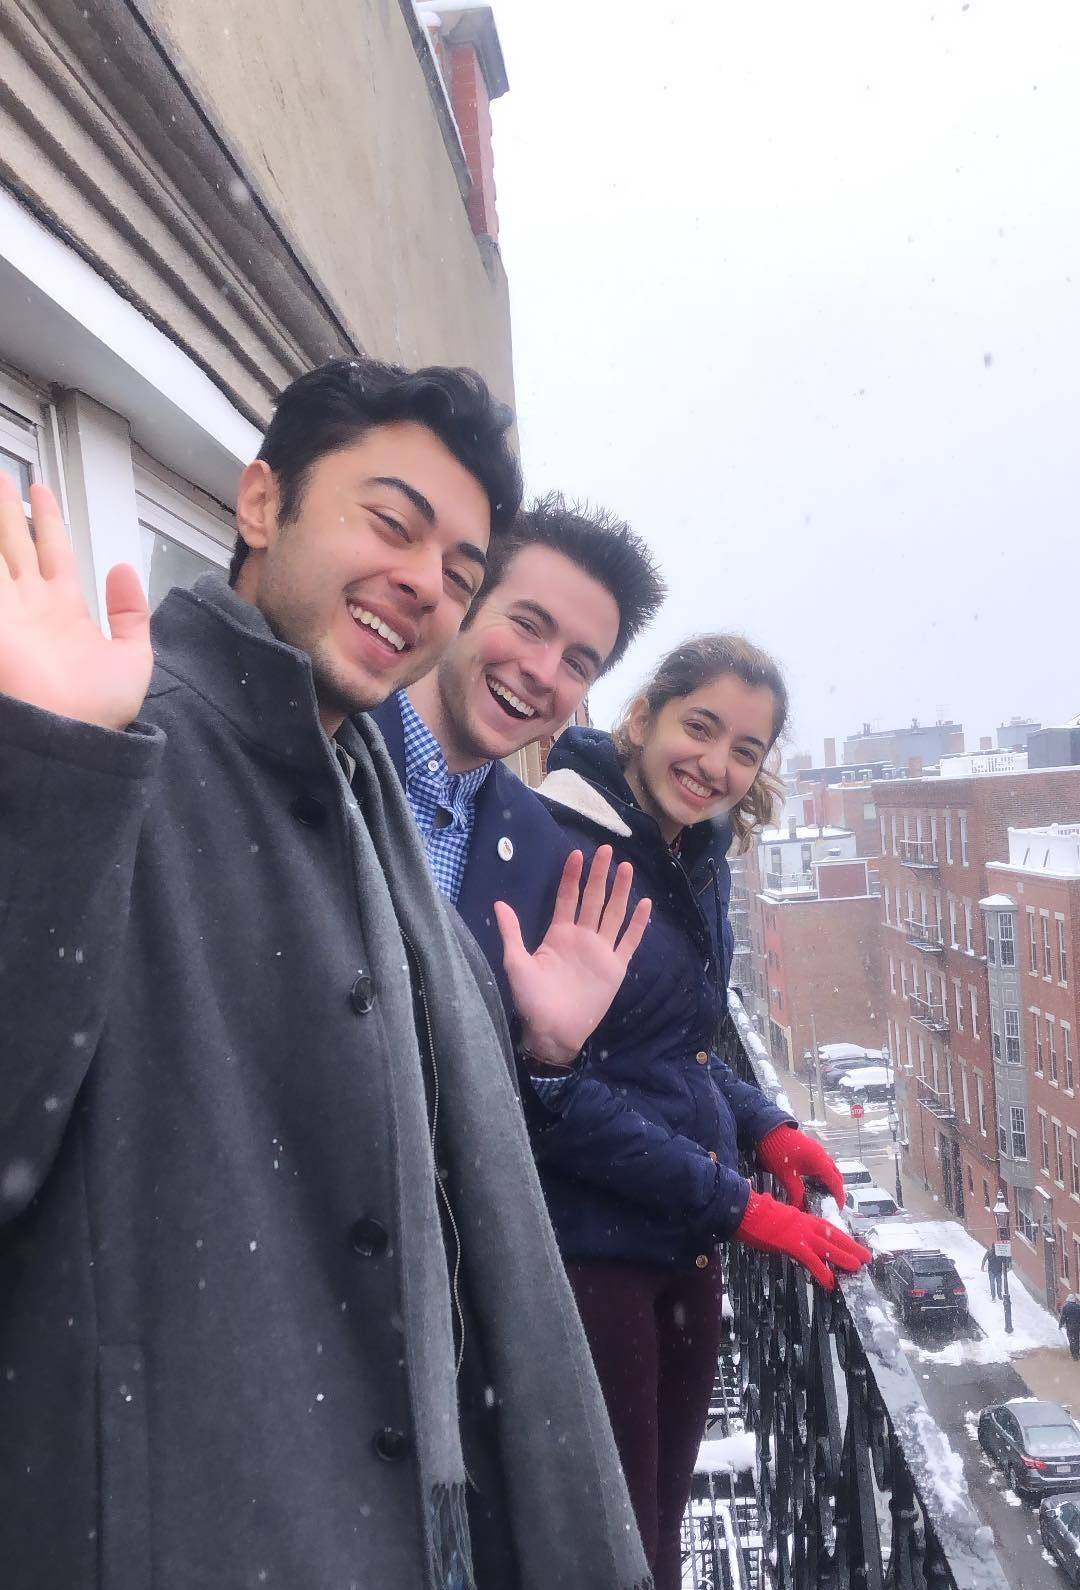 MUNSC Members caught in a snowfall while at hnmun 2019